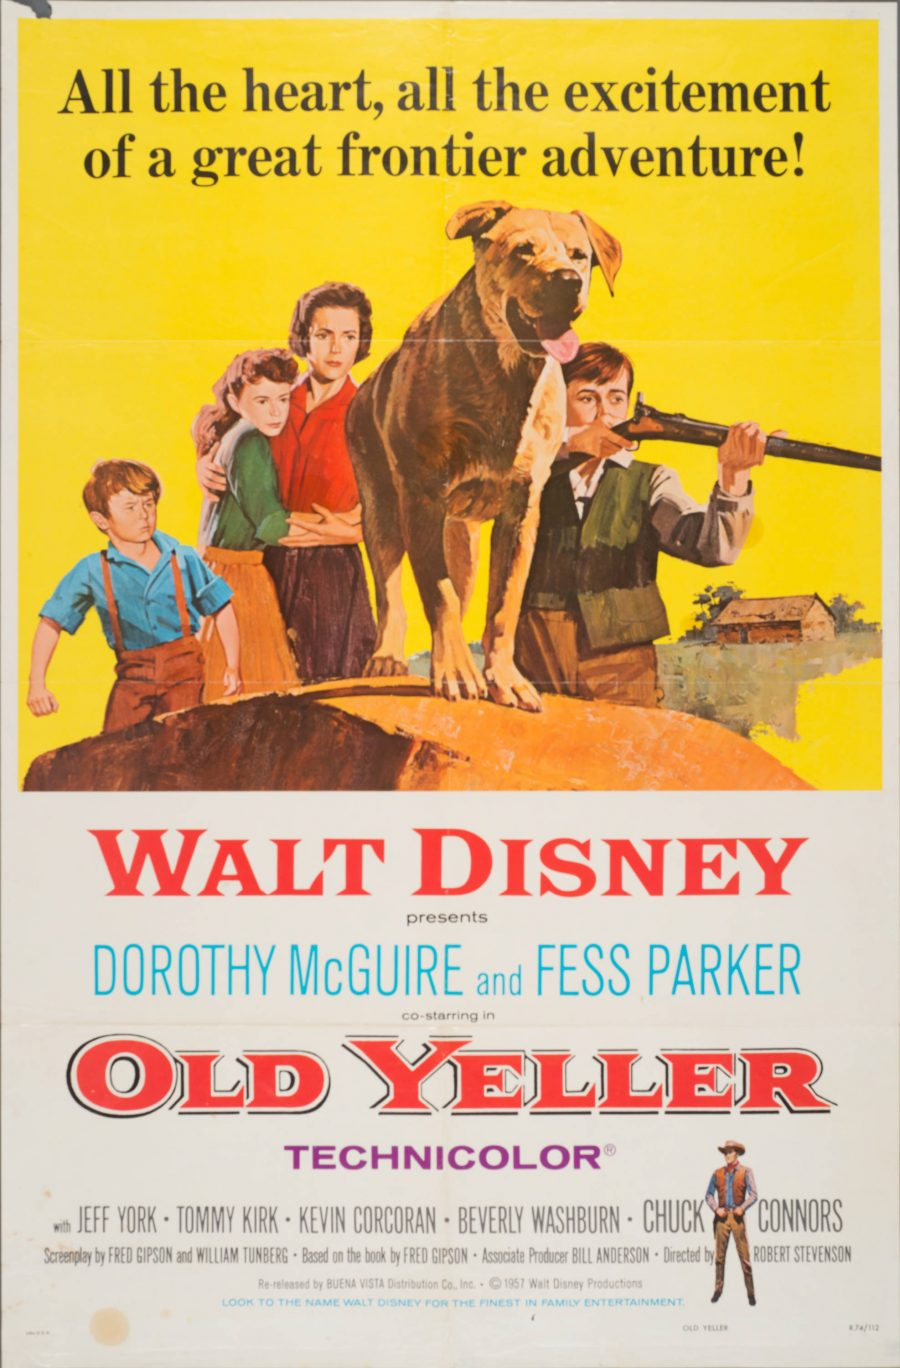 10,000 Classic Movie Posters Getting Digitized & Put Online by the Harry Ransom Center at UT-Austin: Free to Browse & Download Artes & contextos Old Yeller e1516348013879